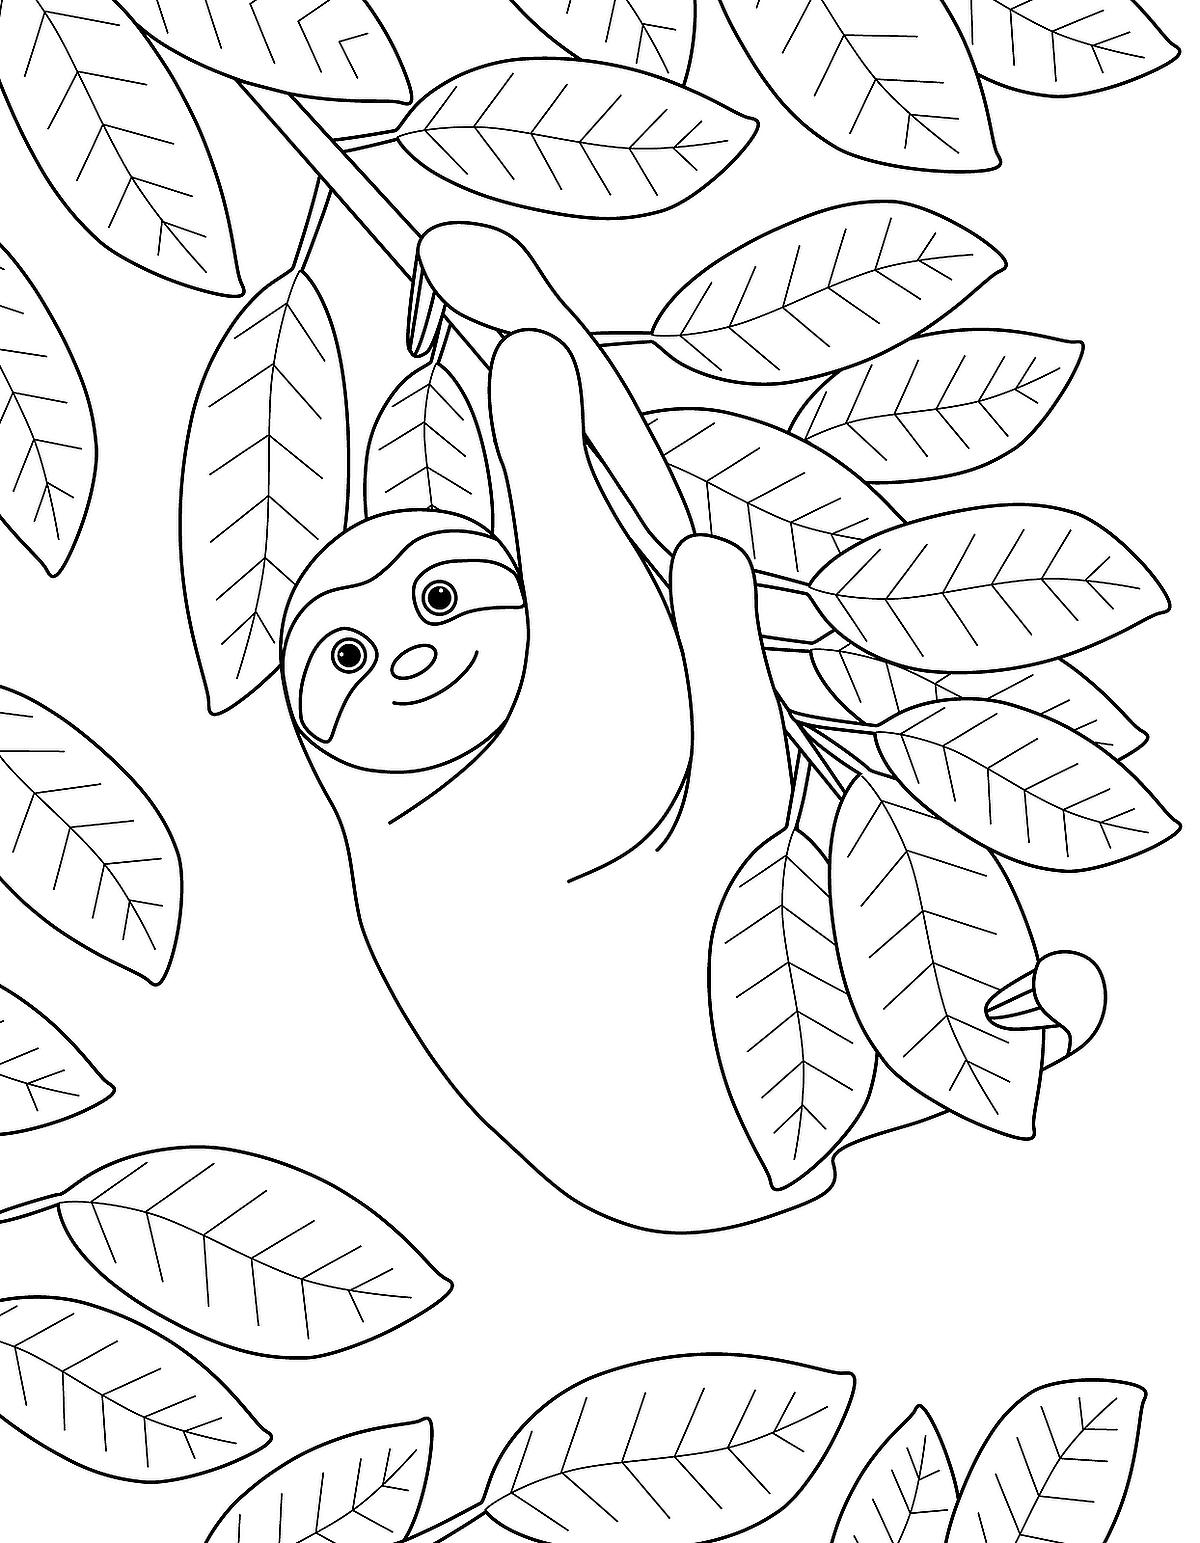 sloth coloring page three toed sloth drawing at getdrawings free download page coloring sloth